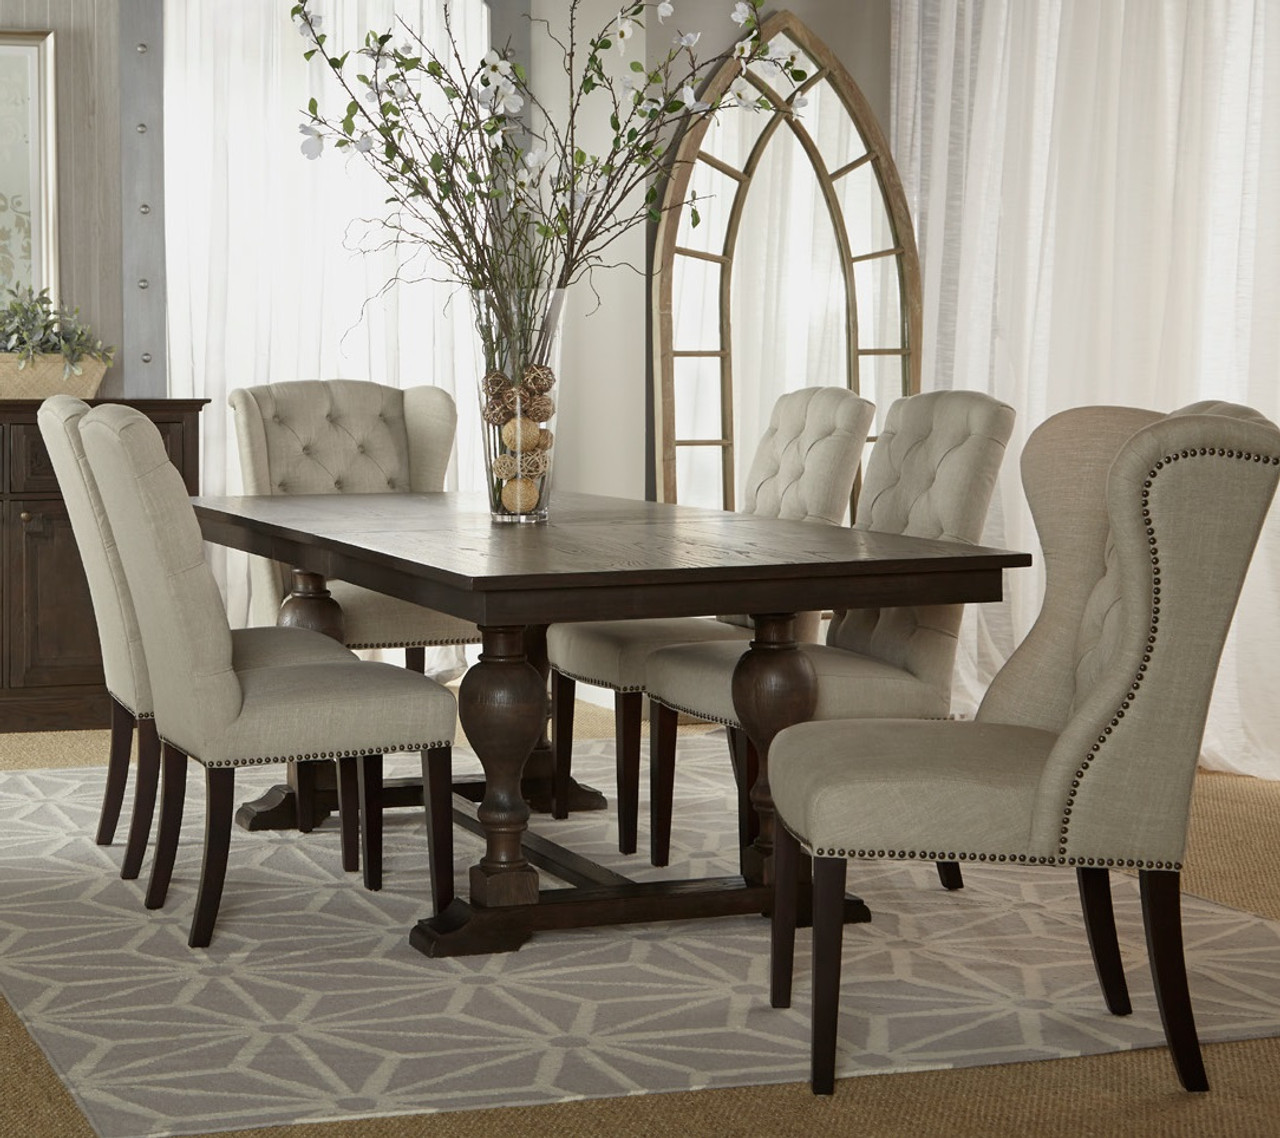 Astor double trestle extension dining table 96 zin home for Table salle a manger sur mesure